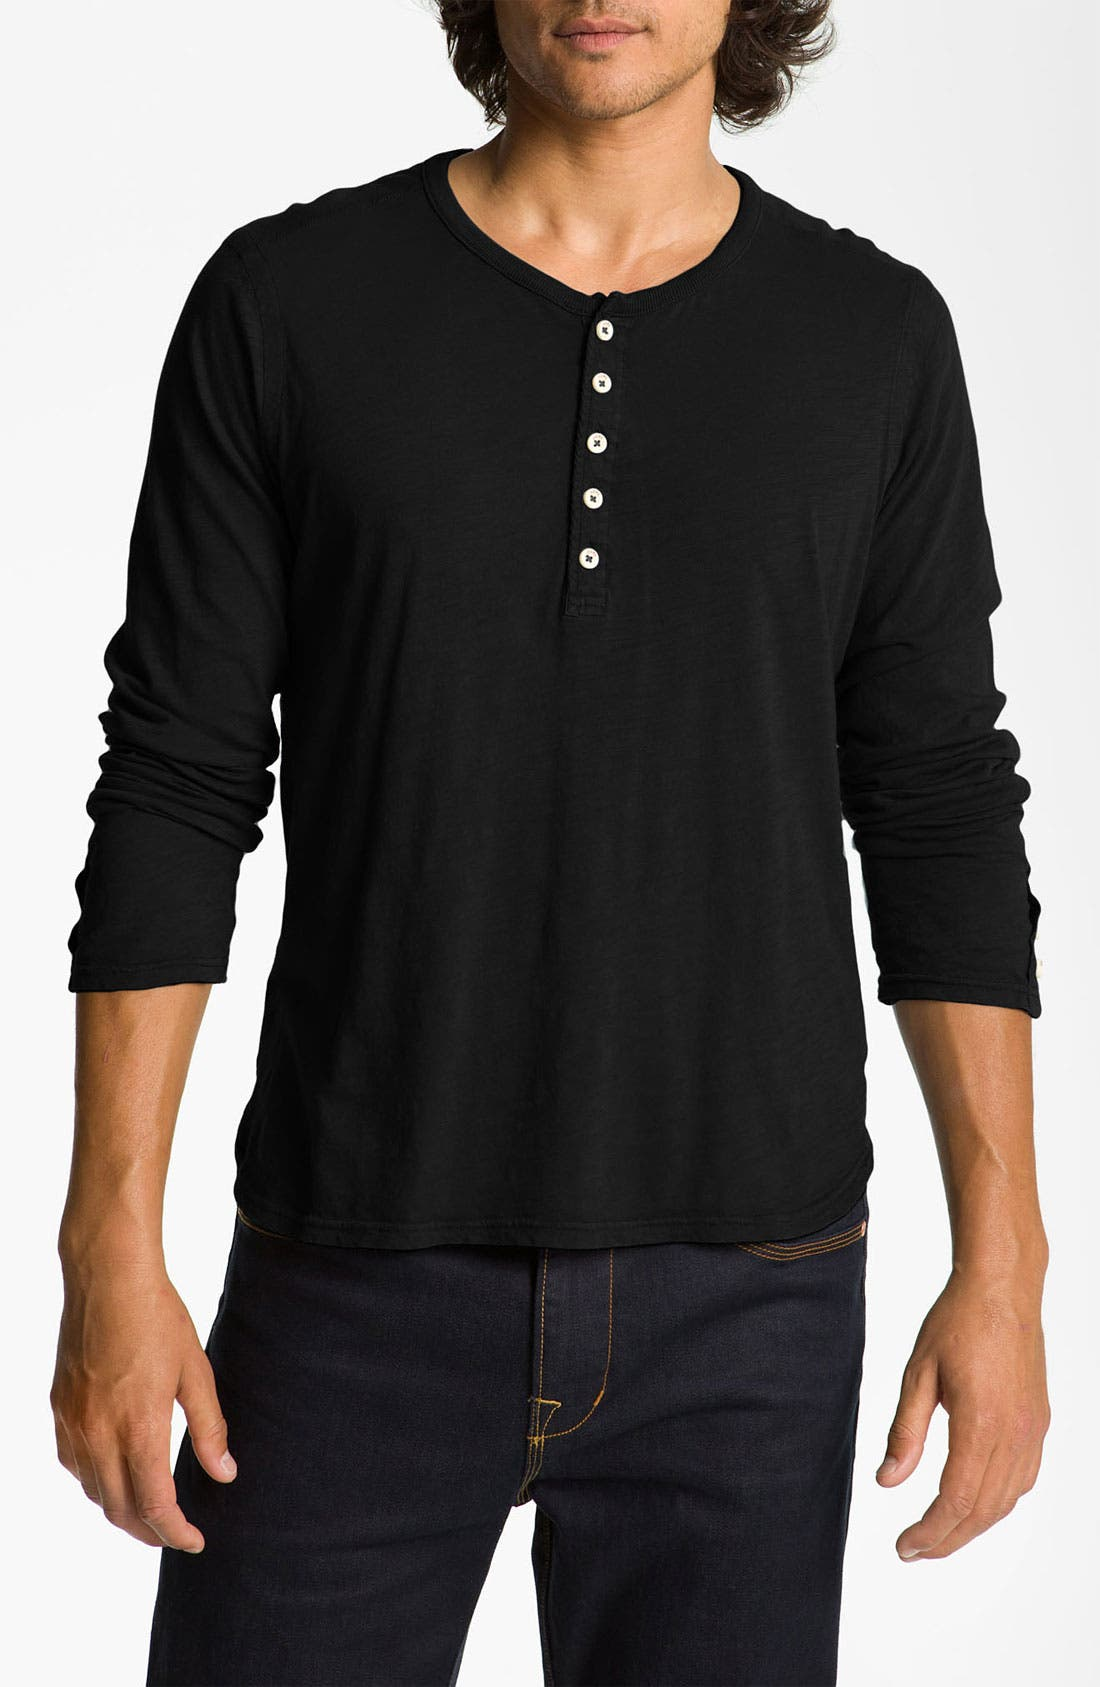 Alternate Image 1 Selected - Howe '1977' Slub Cotton Henley